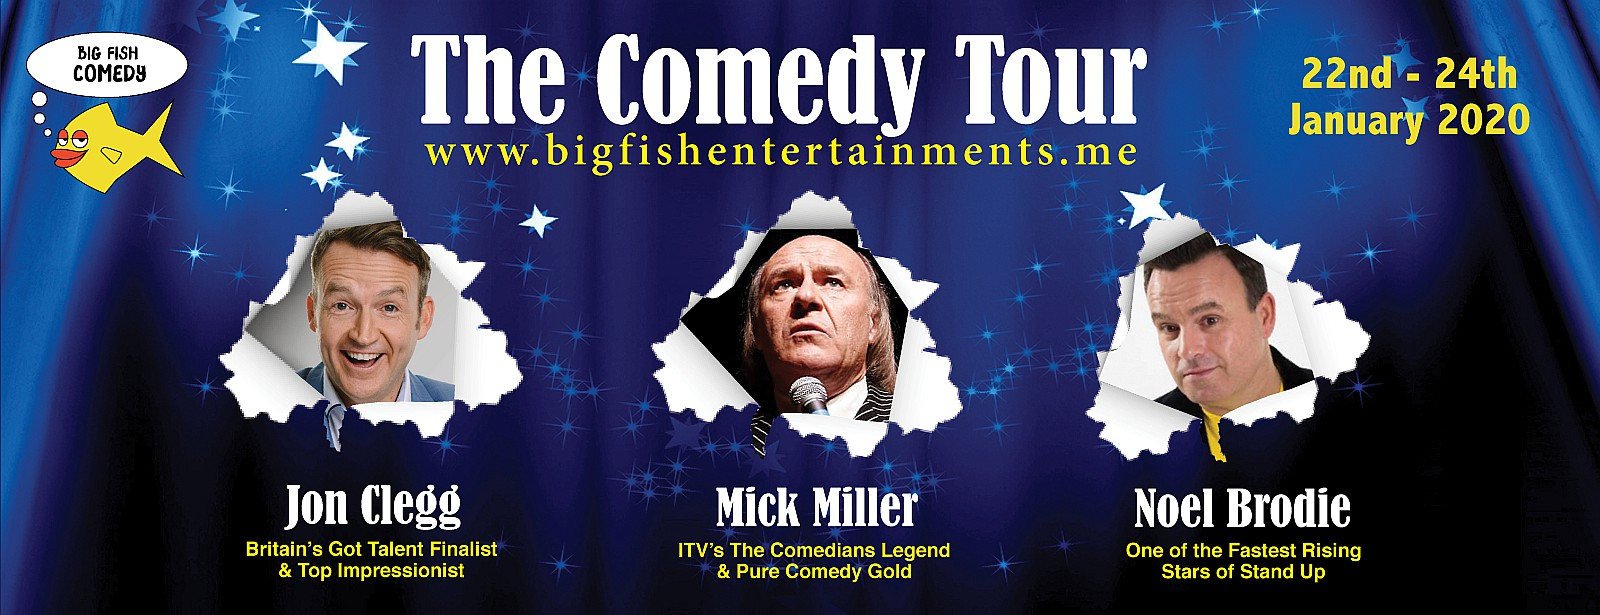 Big Fish Comedy Tour on Jan 22nd – 24th at Mövenpick Hotel Jumeirah Beach Dubai